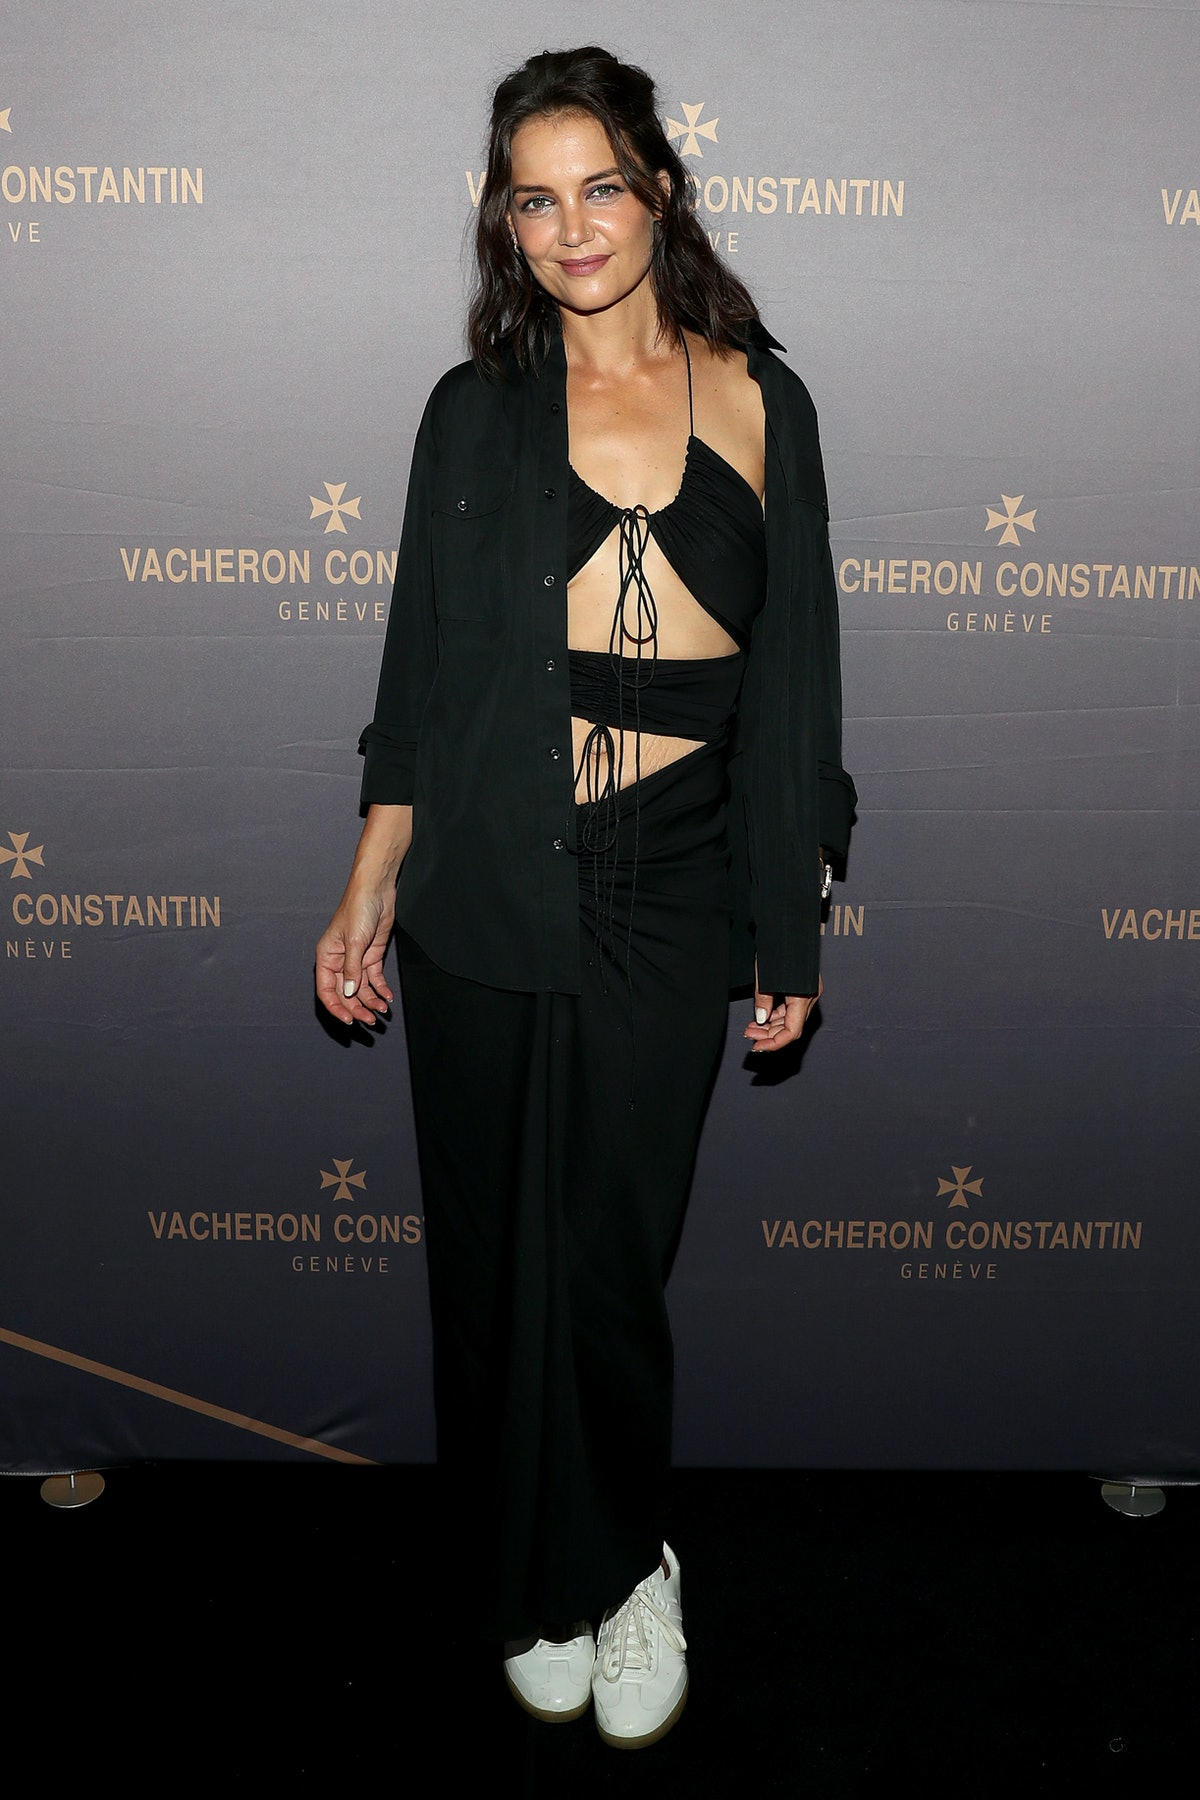 NEW YORK, NEW YORK - SEPTEMBER 08: Katie Holmes attends the Vacheron Constantin Flagship Grand Openi...